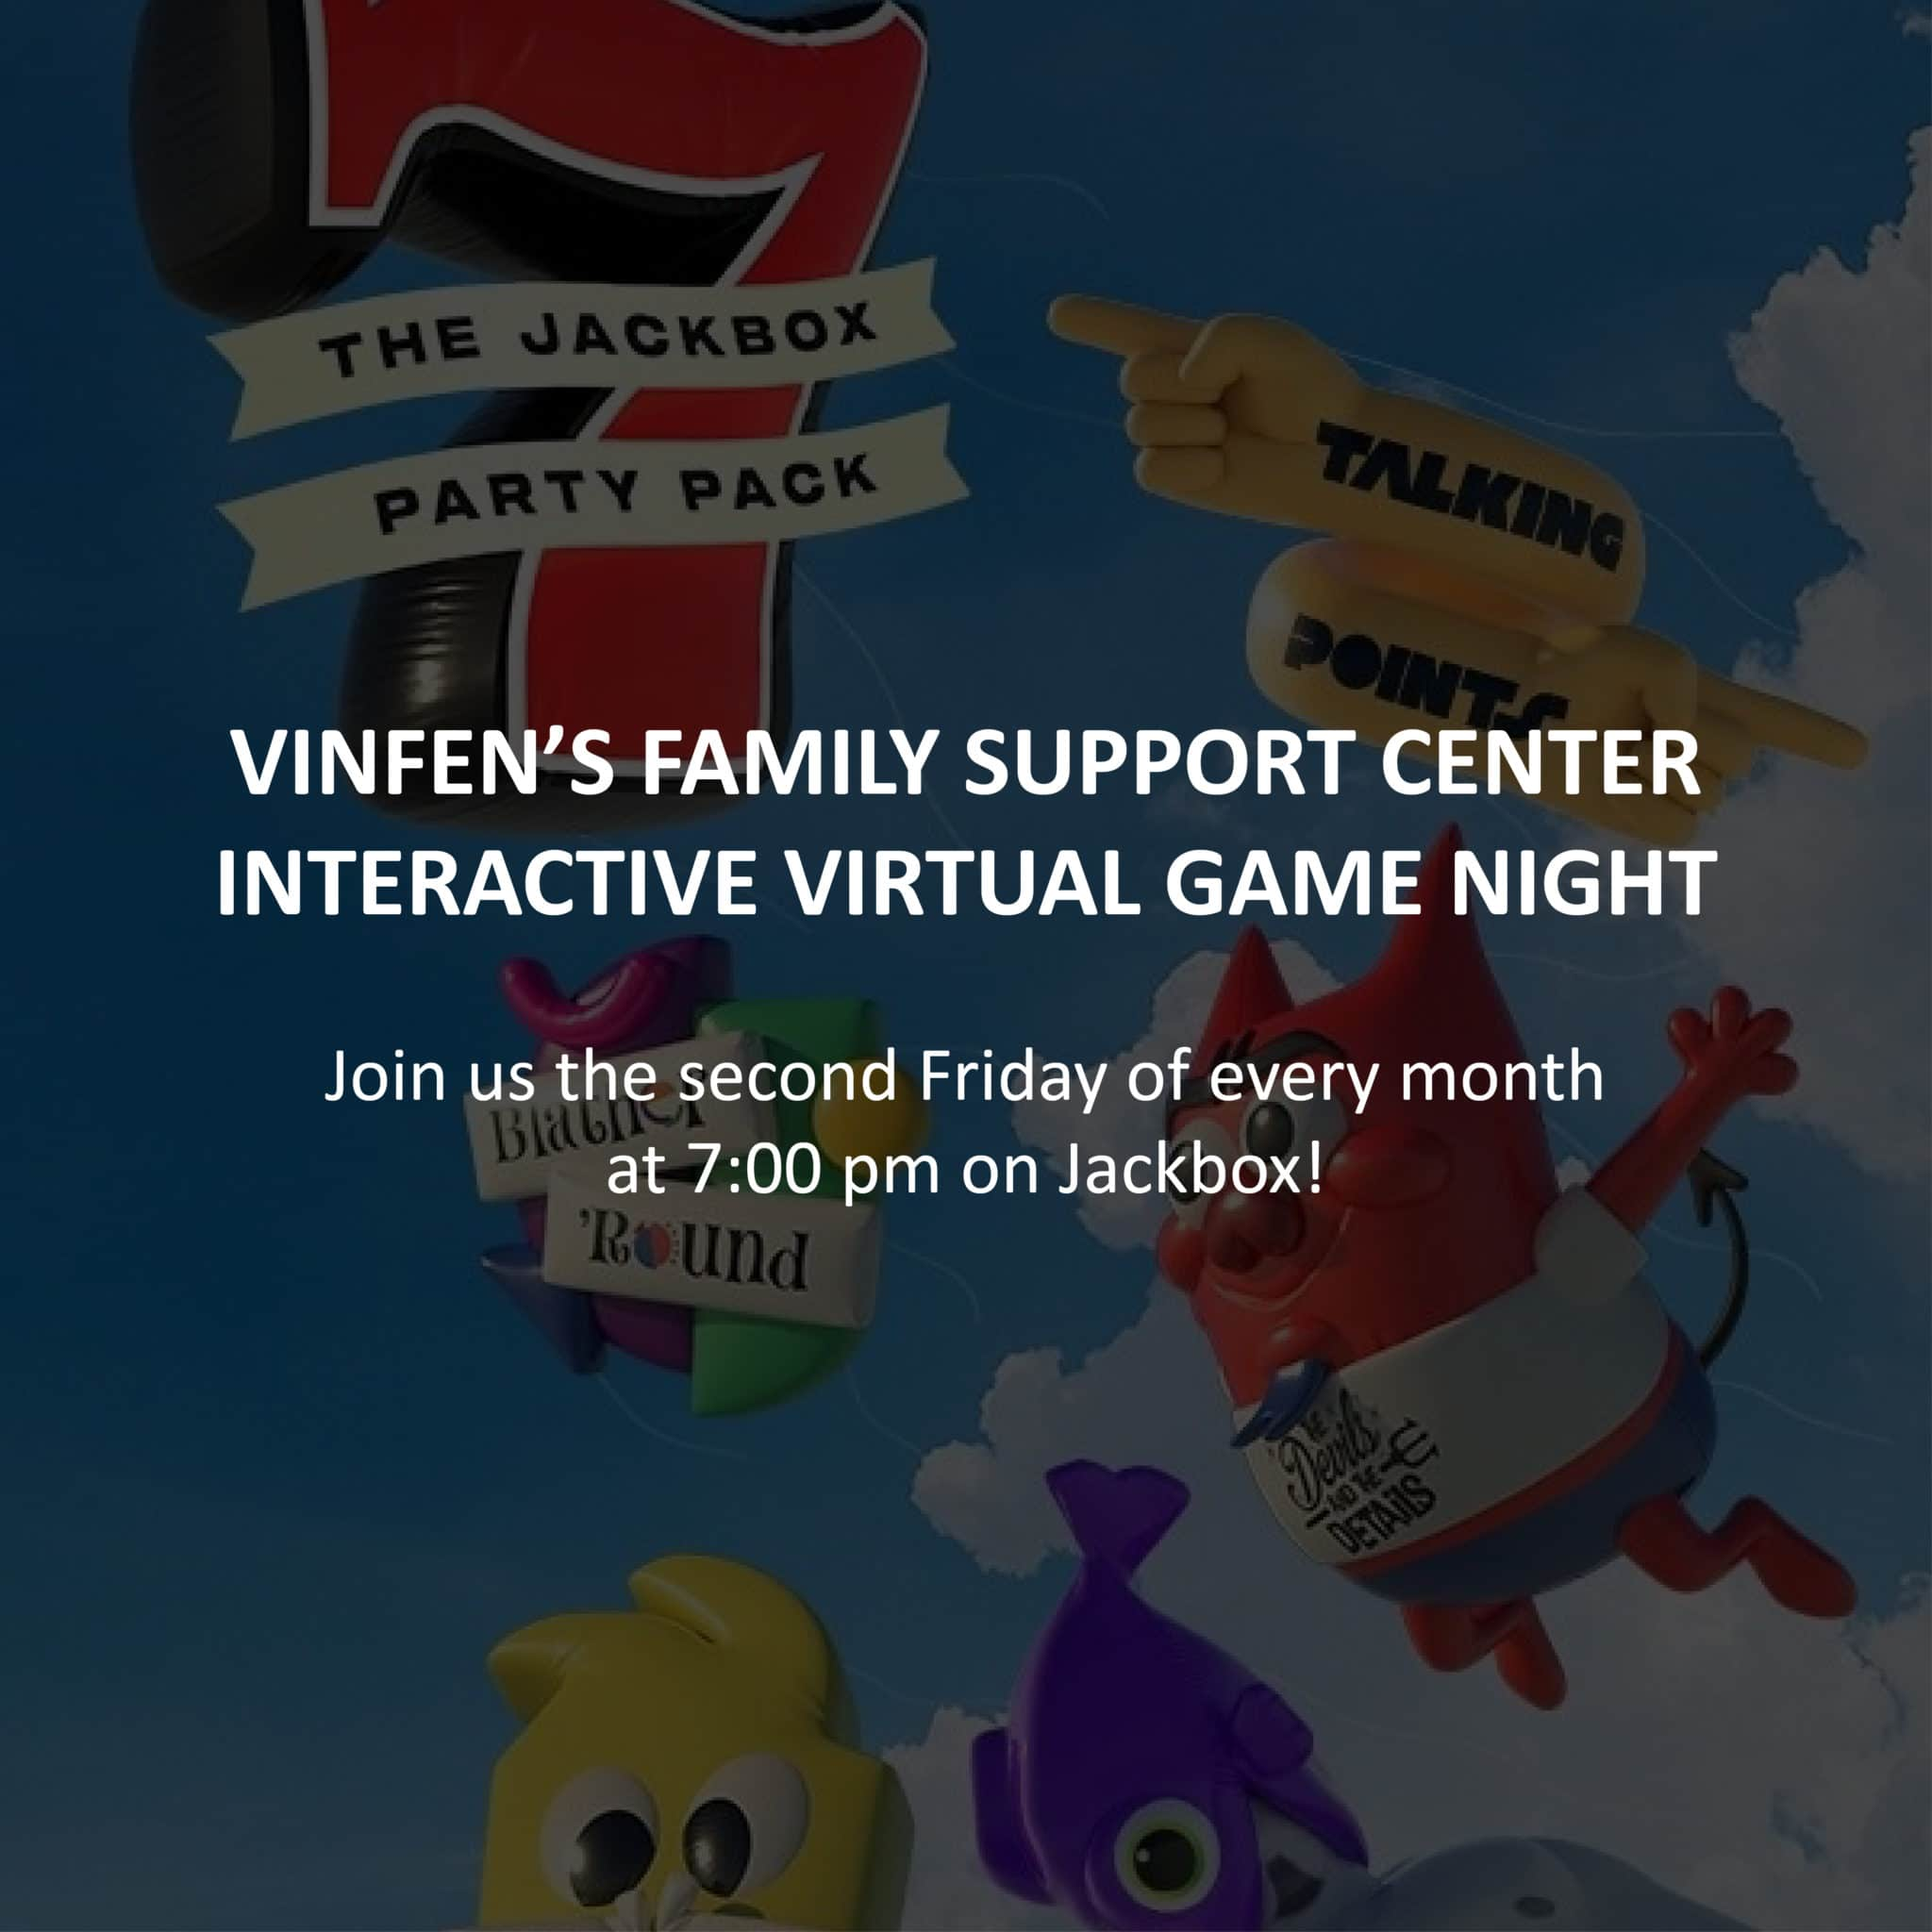 VInfen Family Support Center Game Night